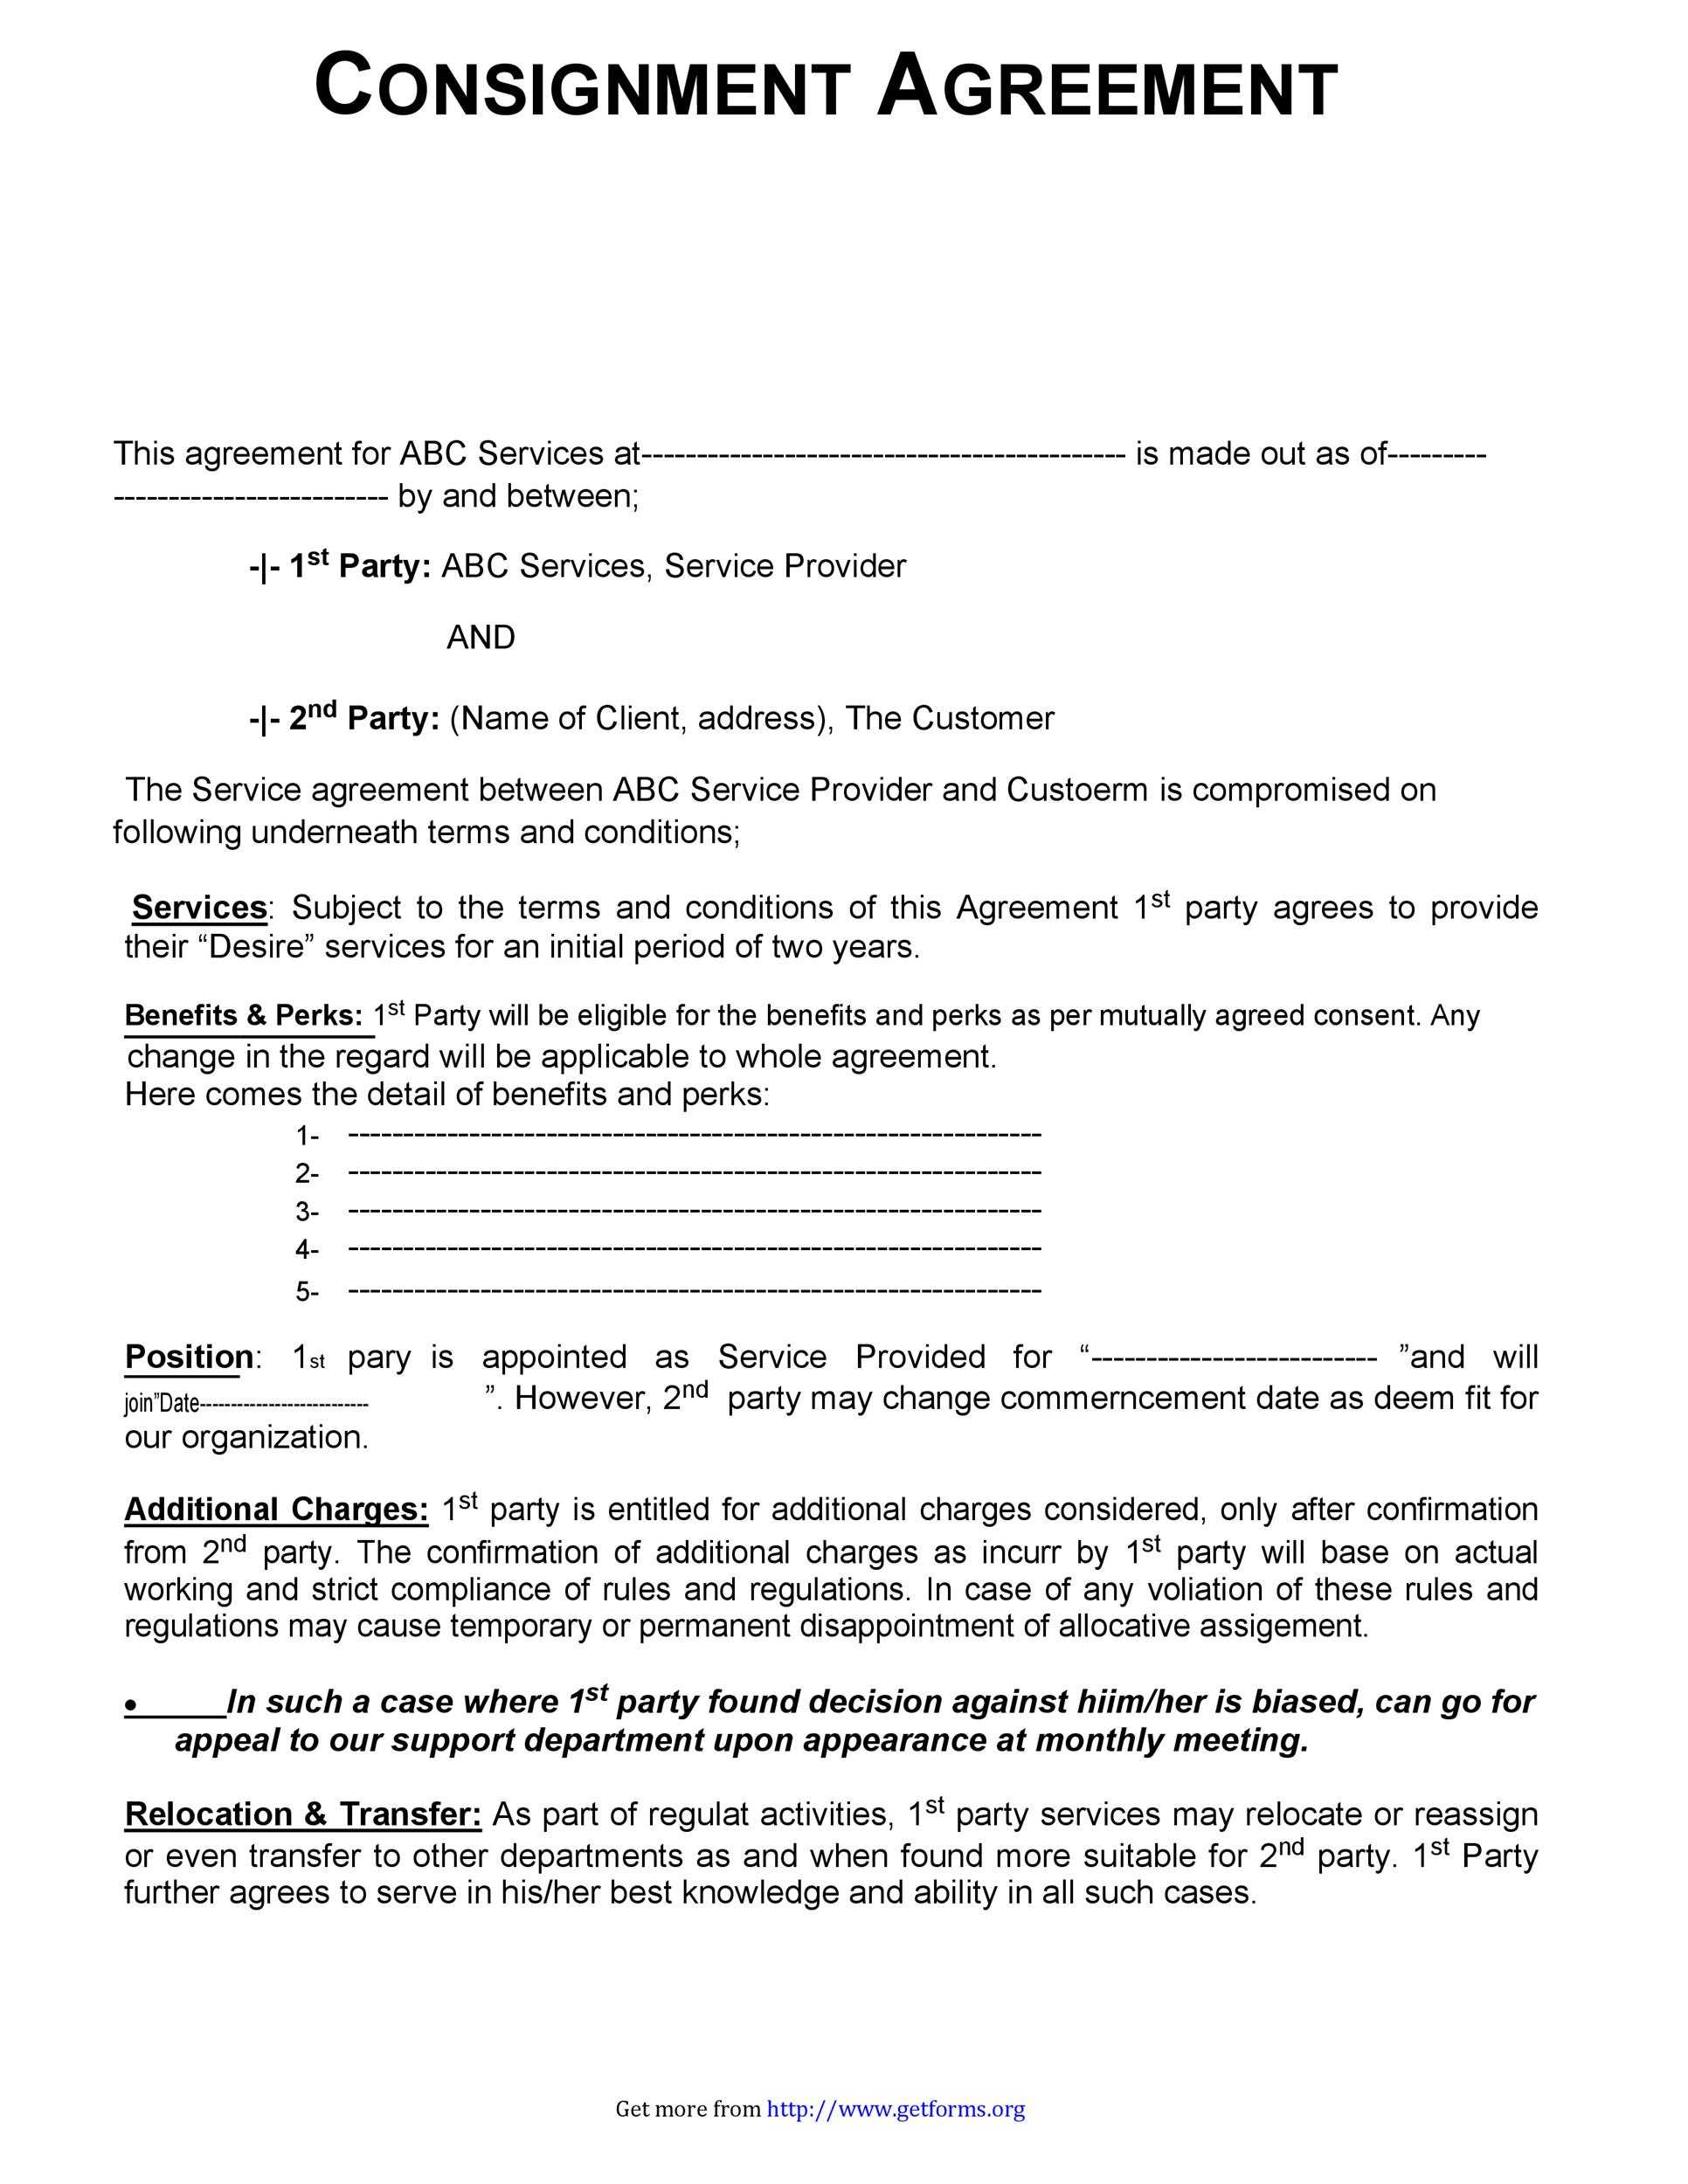 Free Consignment Agreement Template 09